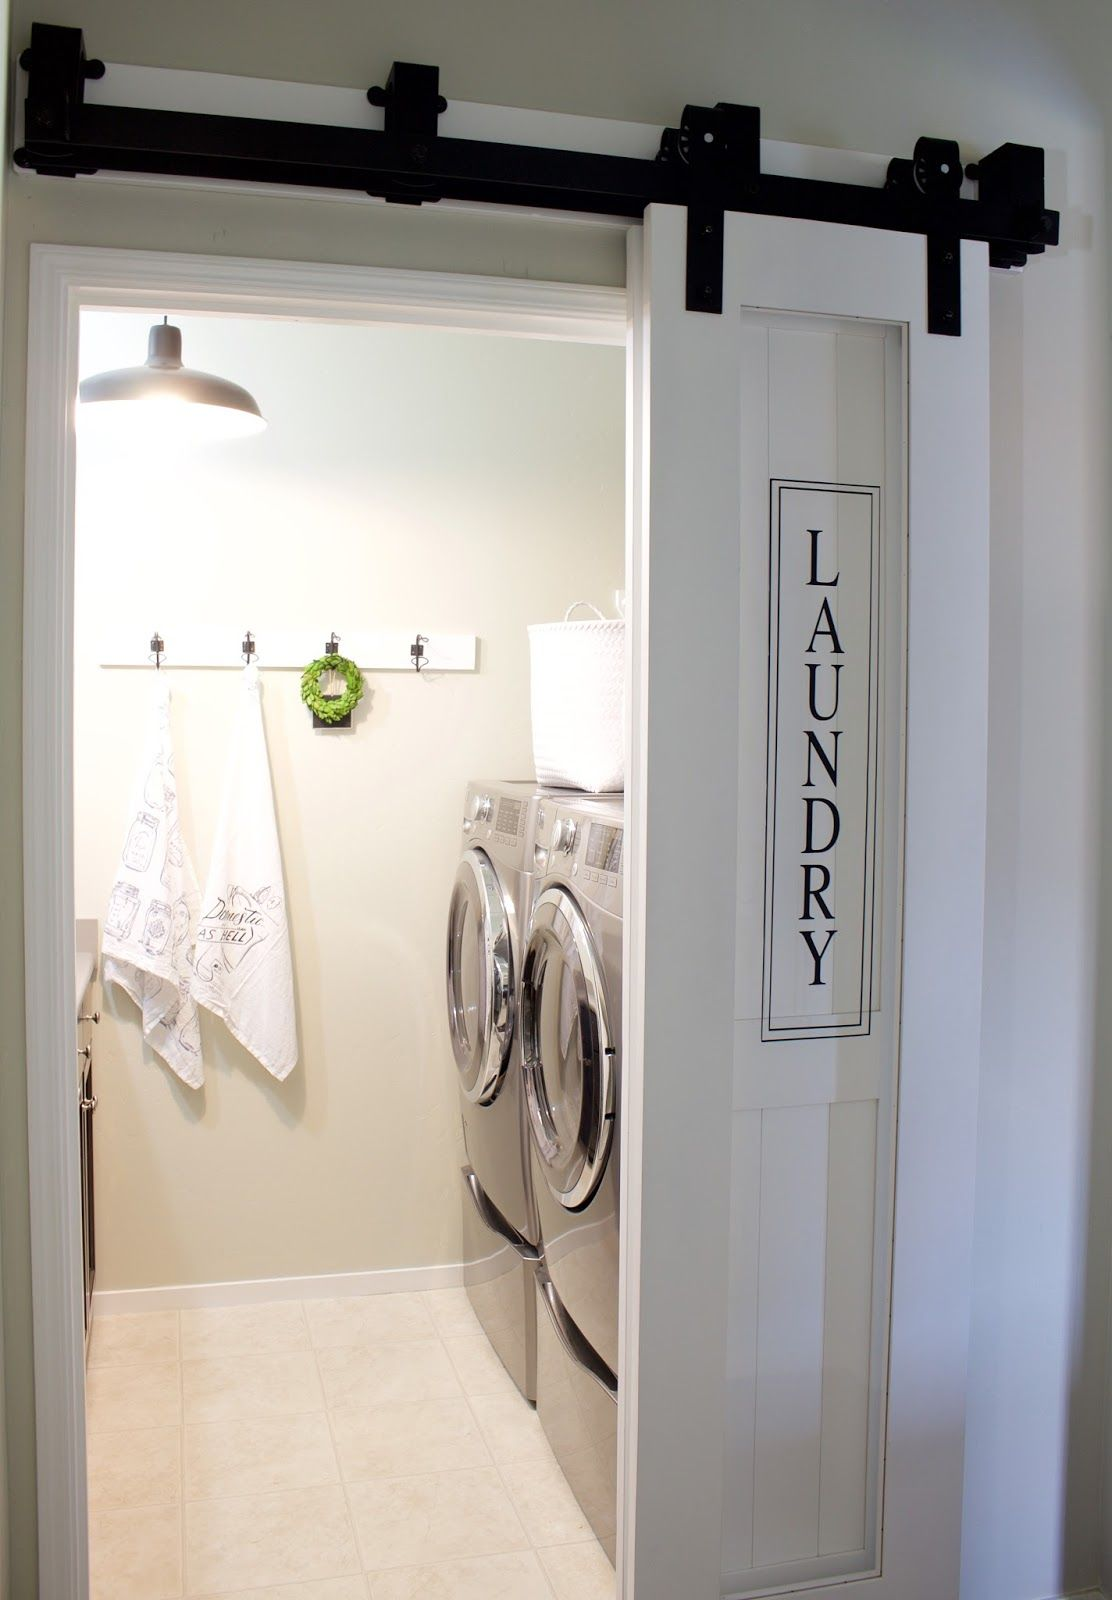 Basement laundry room decorations ideas and tips - Laundry room wall ideas ...